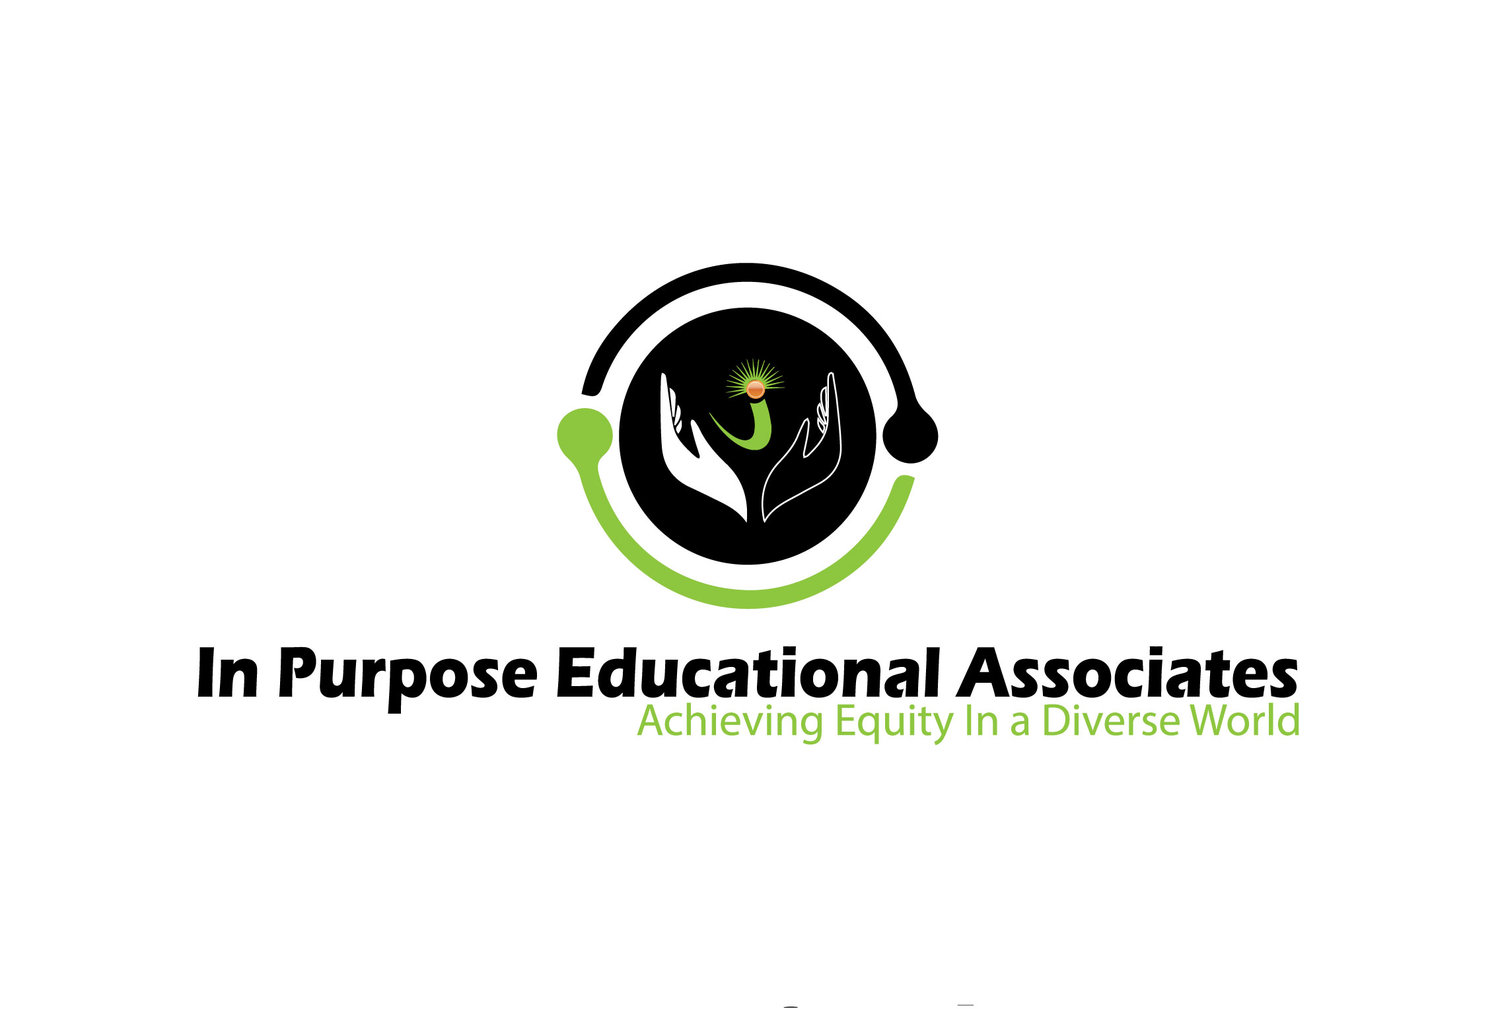 IN PURPOSE EDUCATIONAL ASSOCIATES